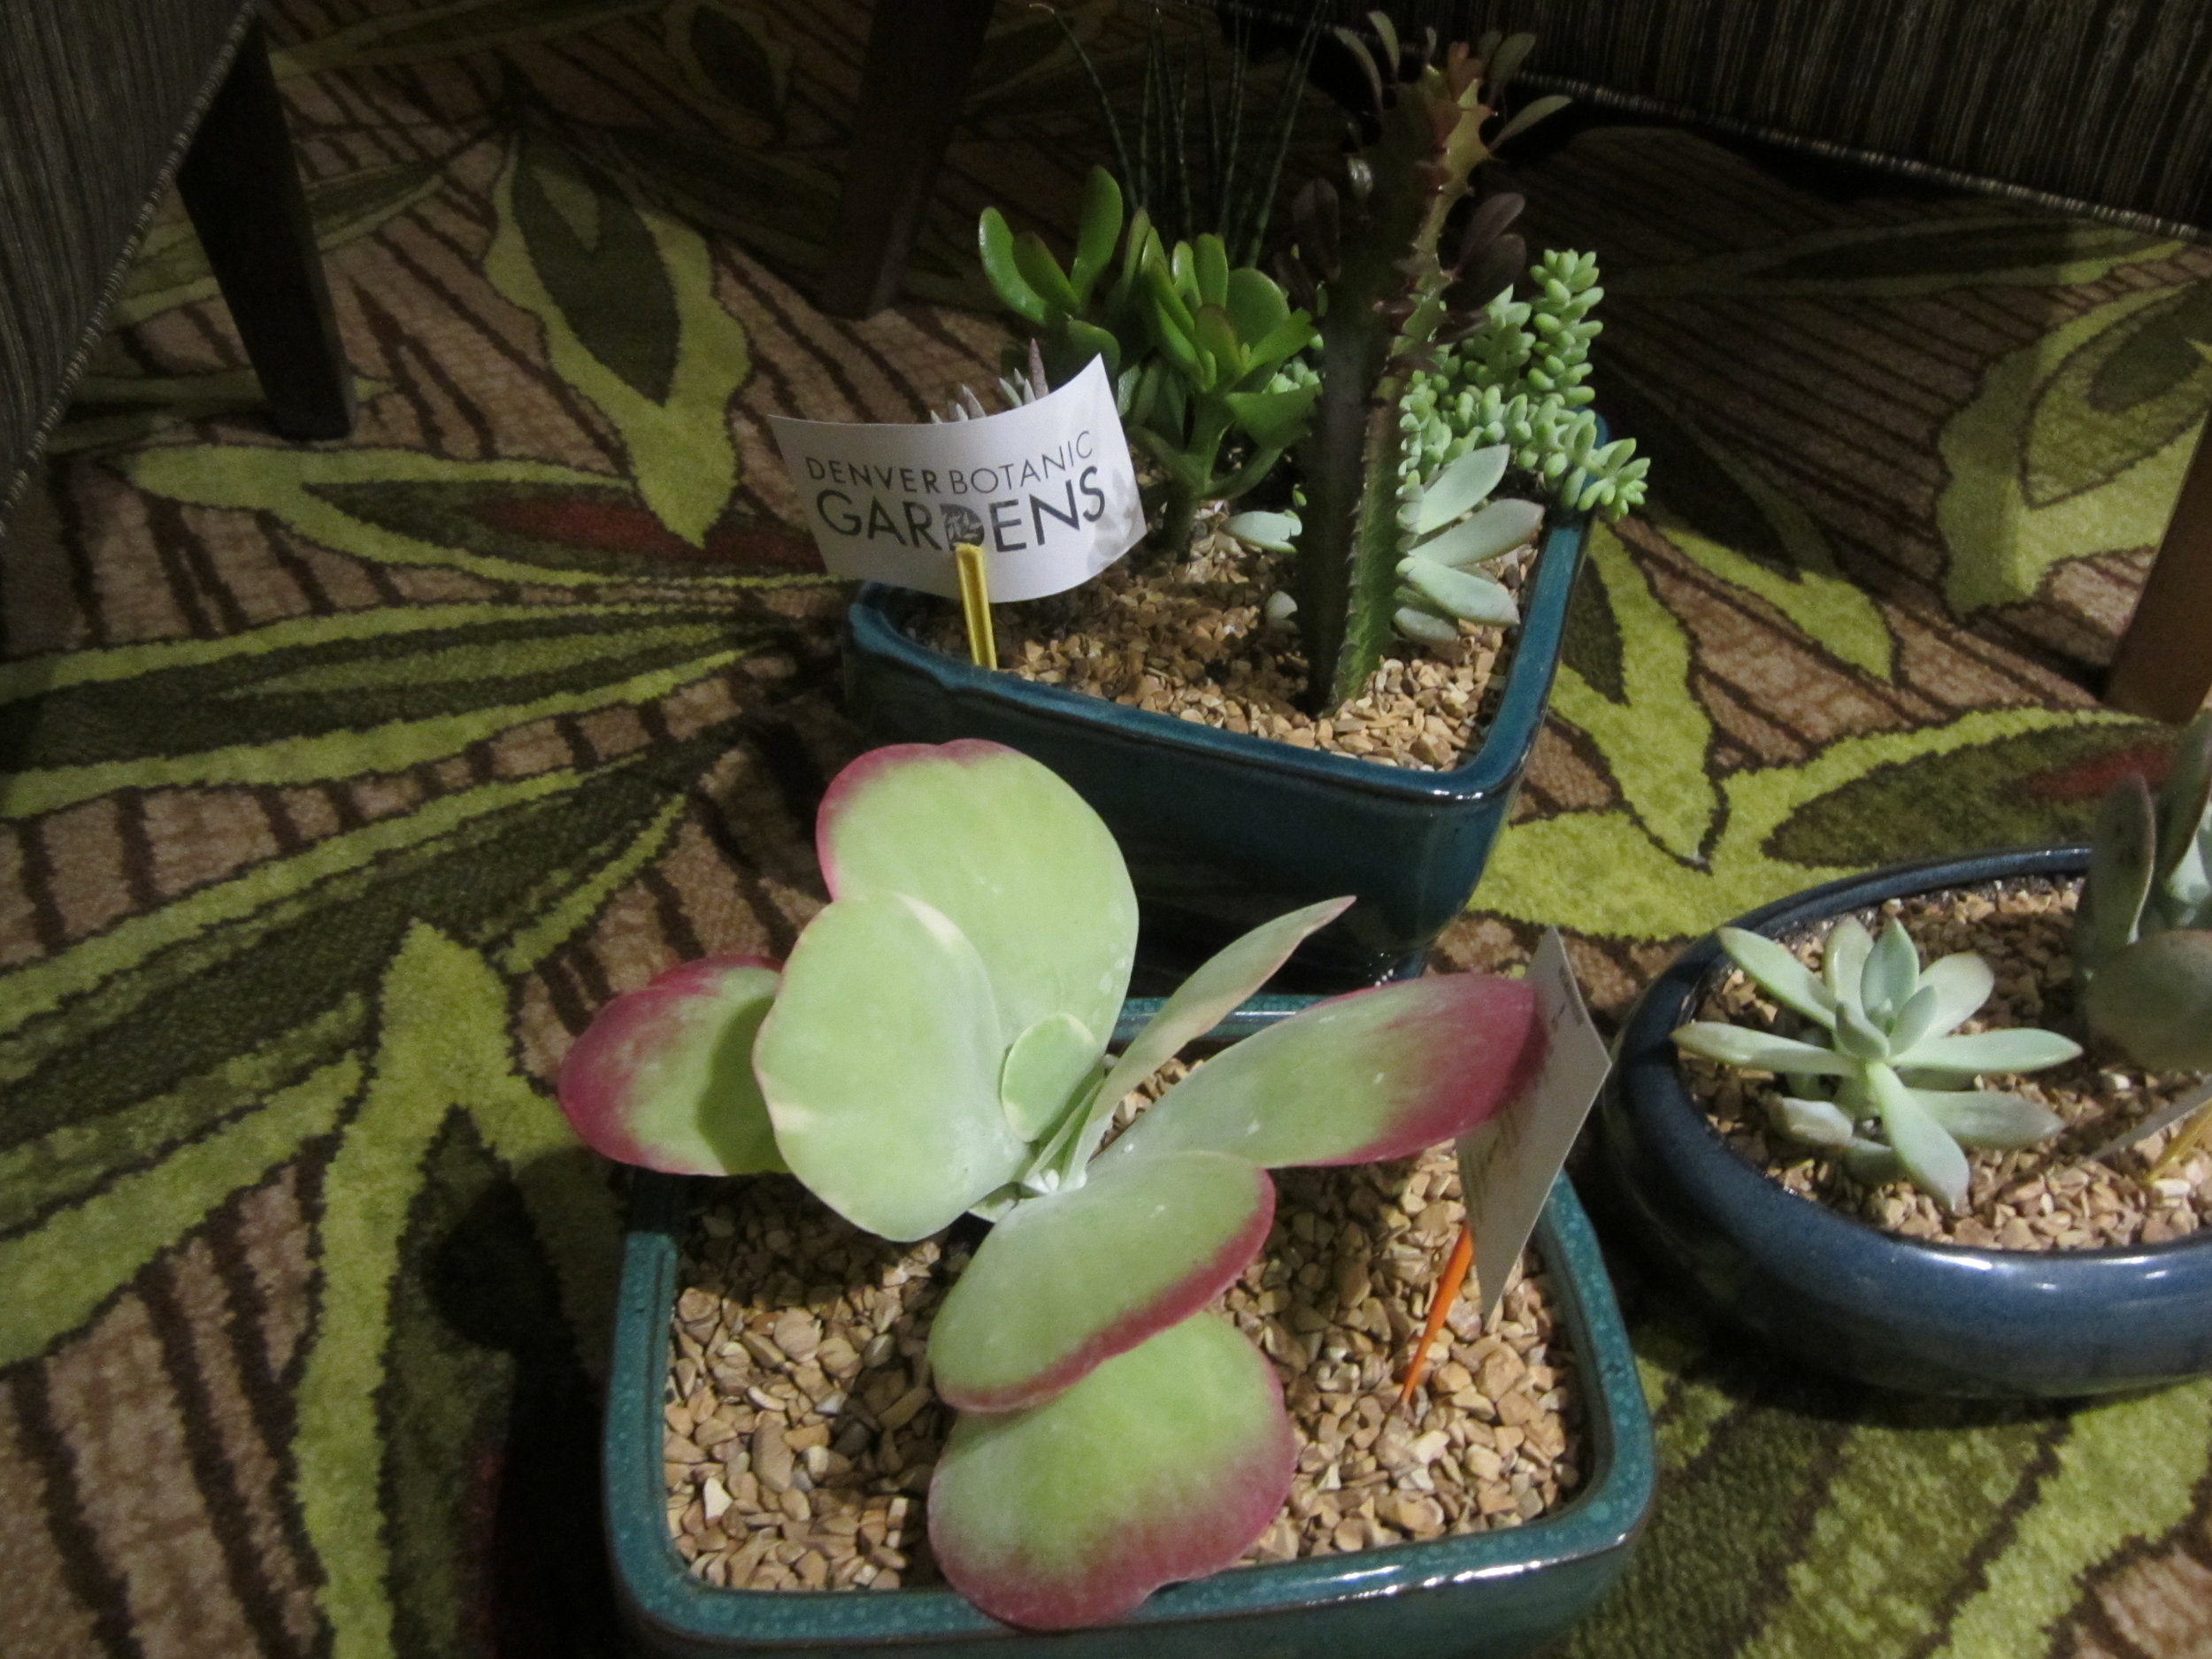 Succulents provided by the Denver Botanic Gardens for the Quiet Room.